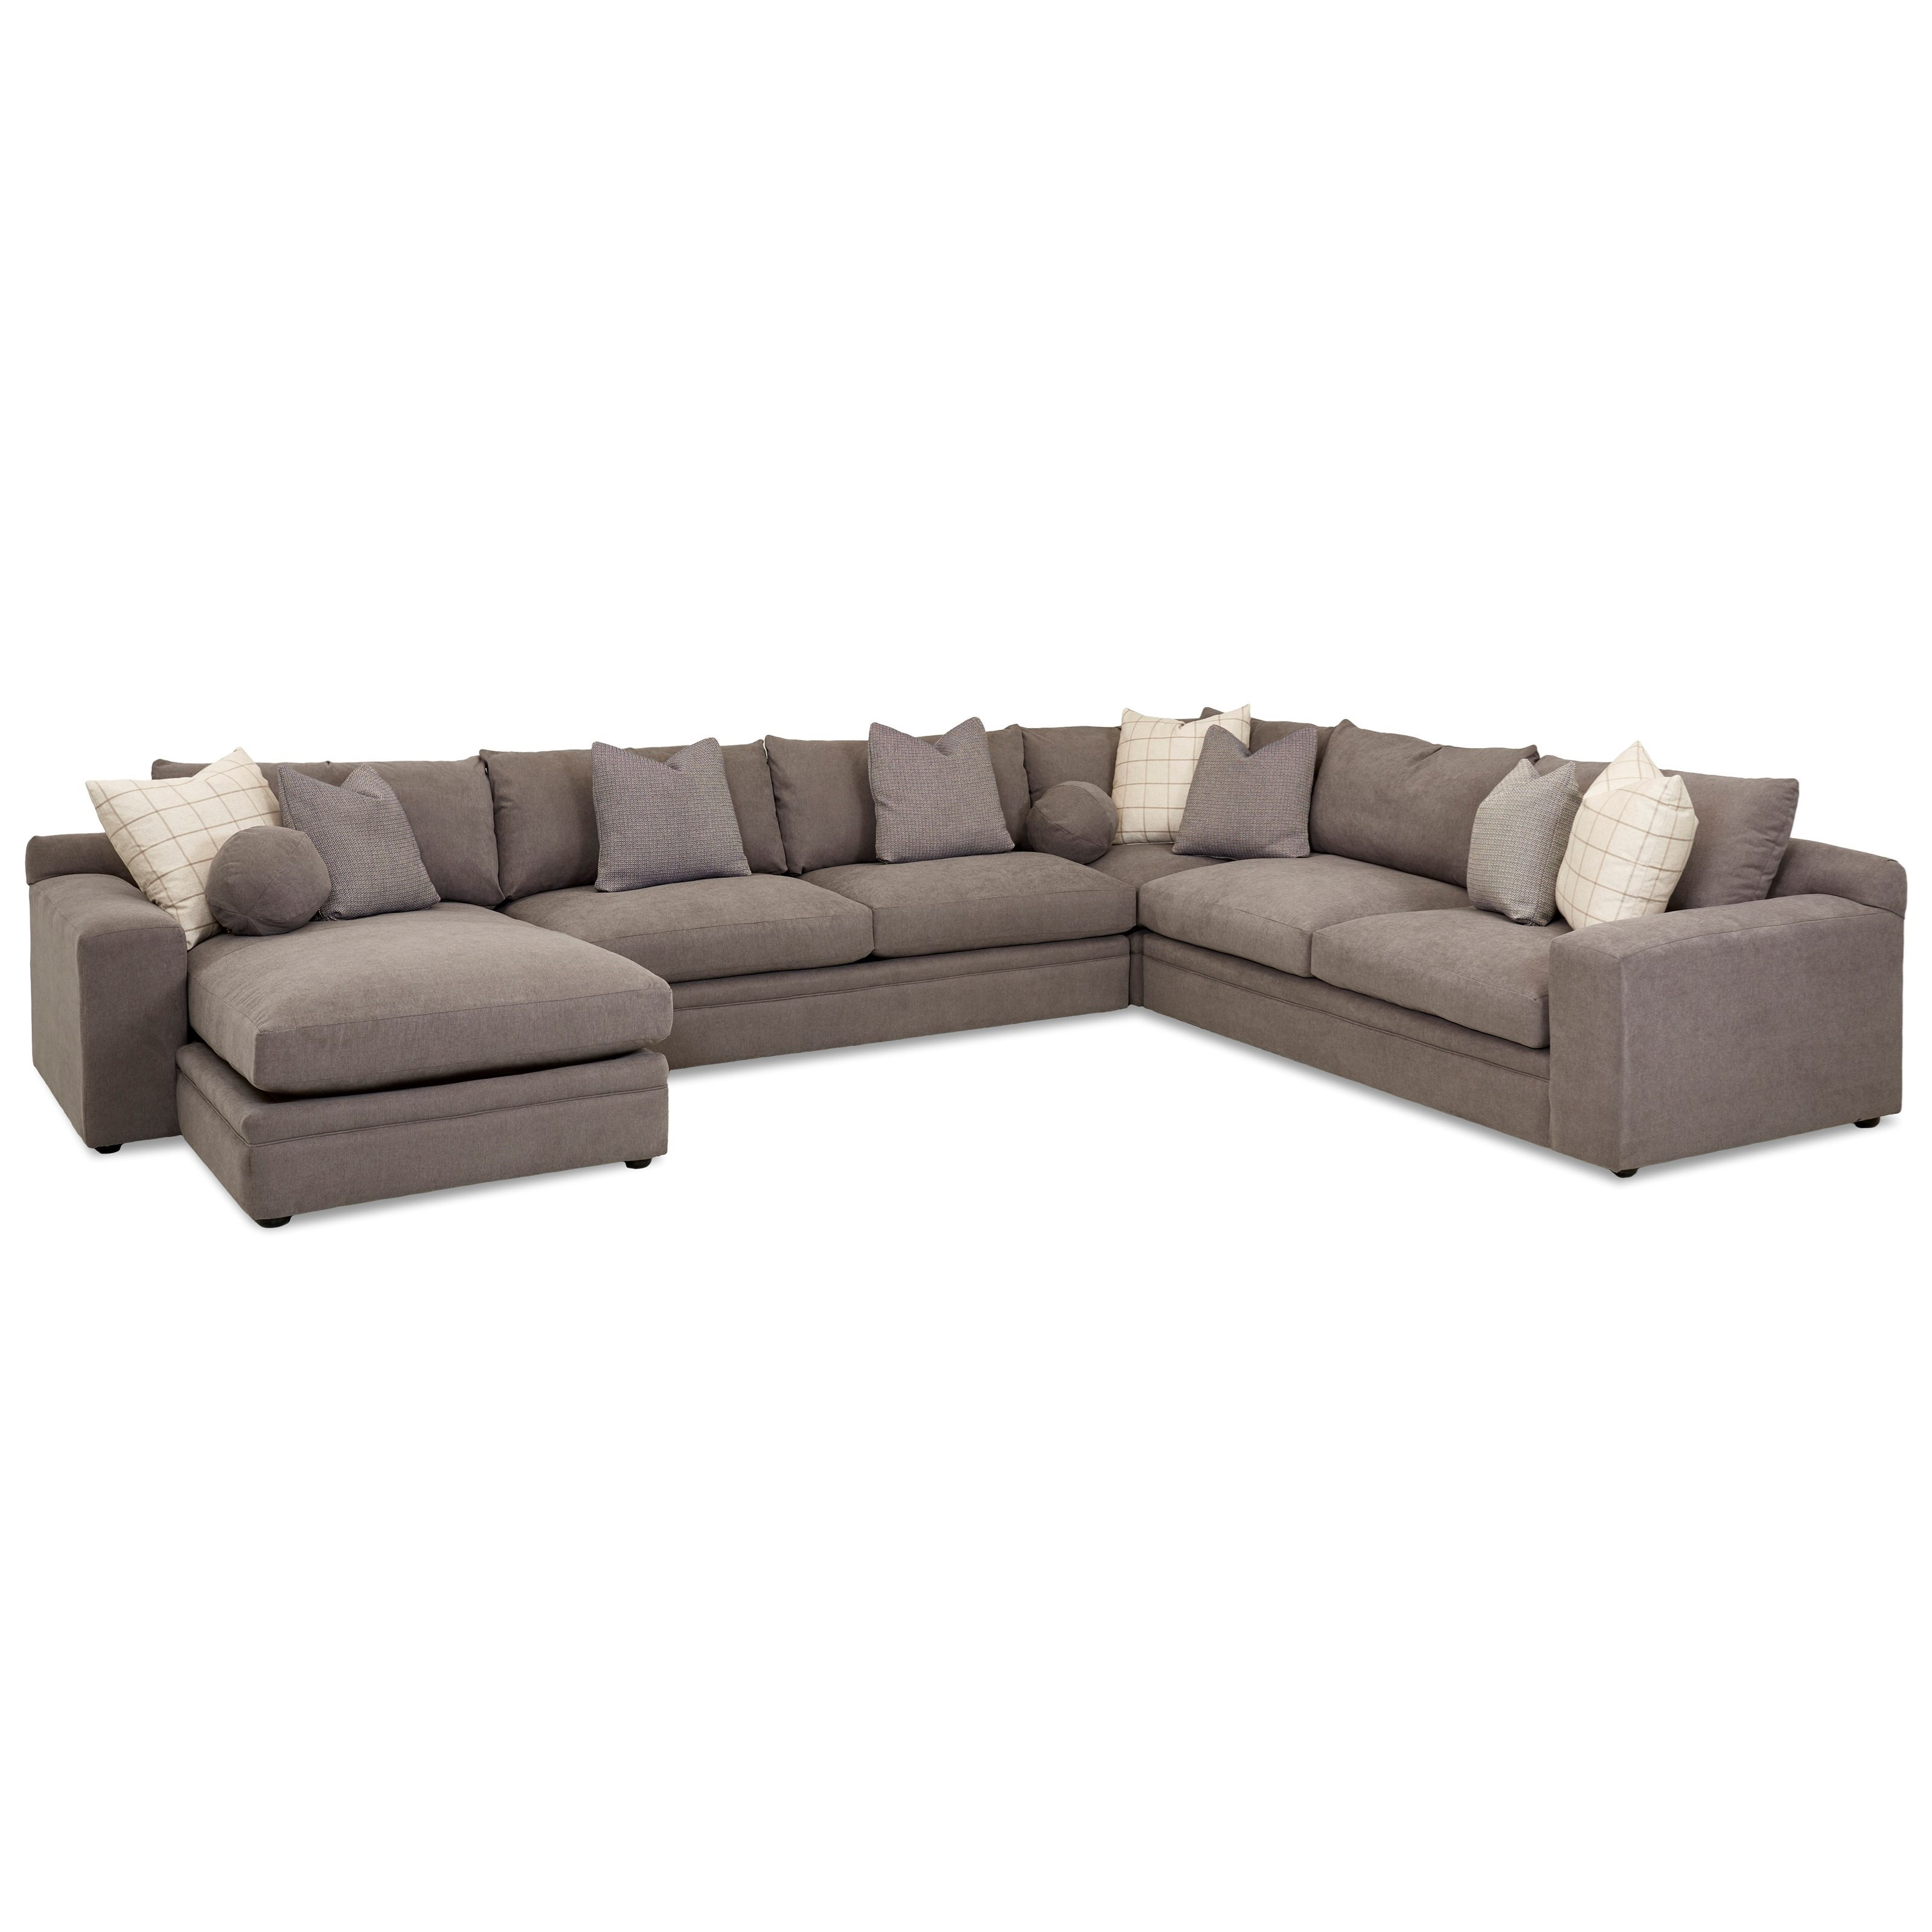 Casual Four Piece Sectional Sofa with LAF Chaise